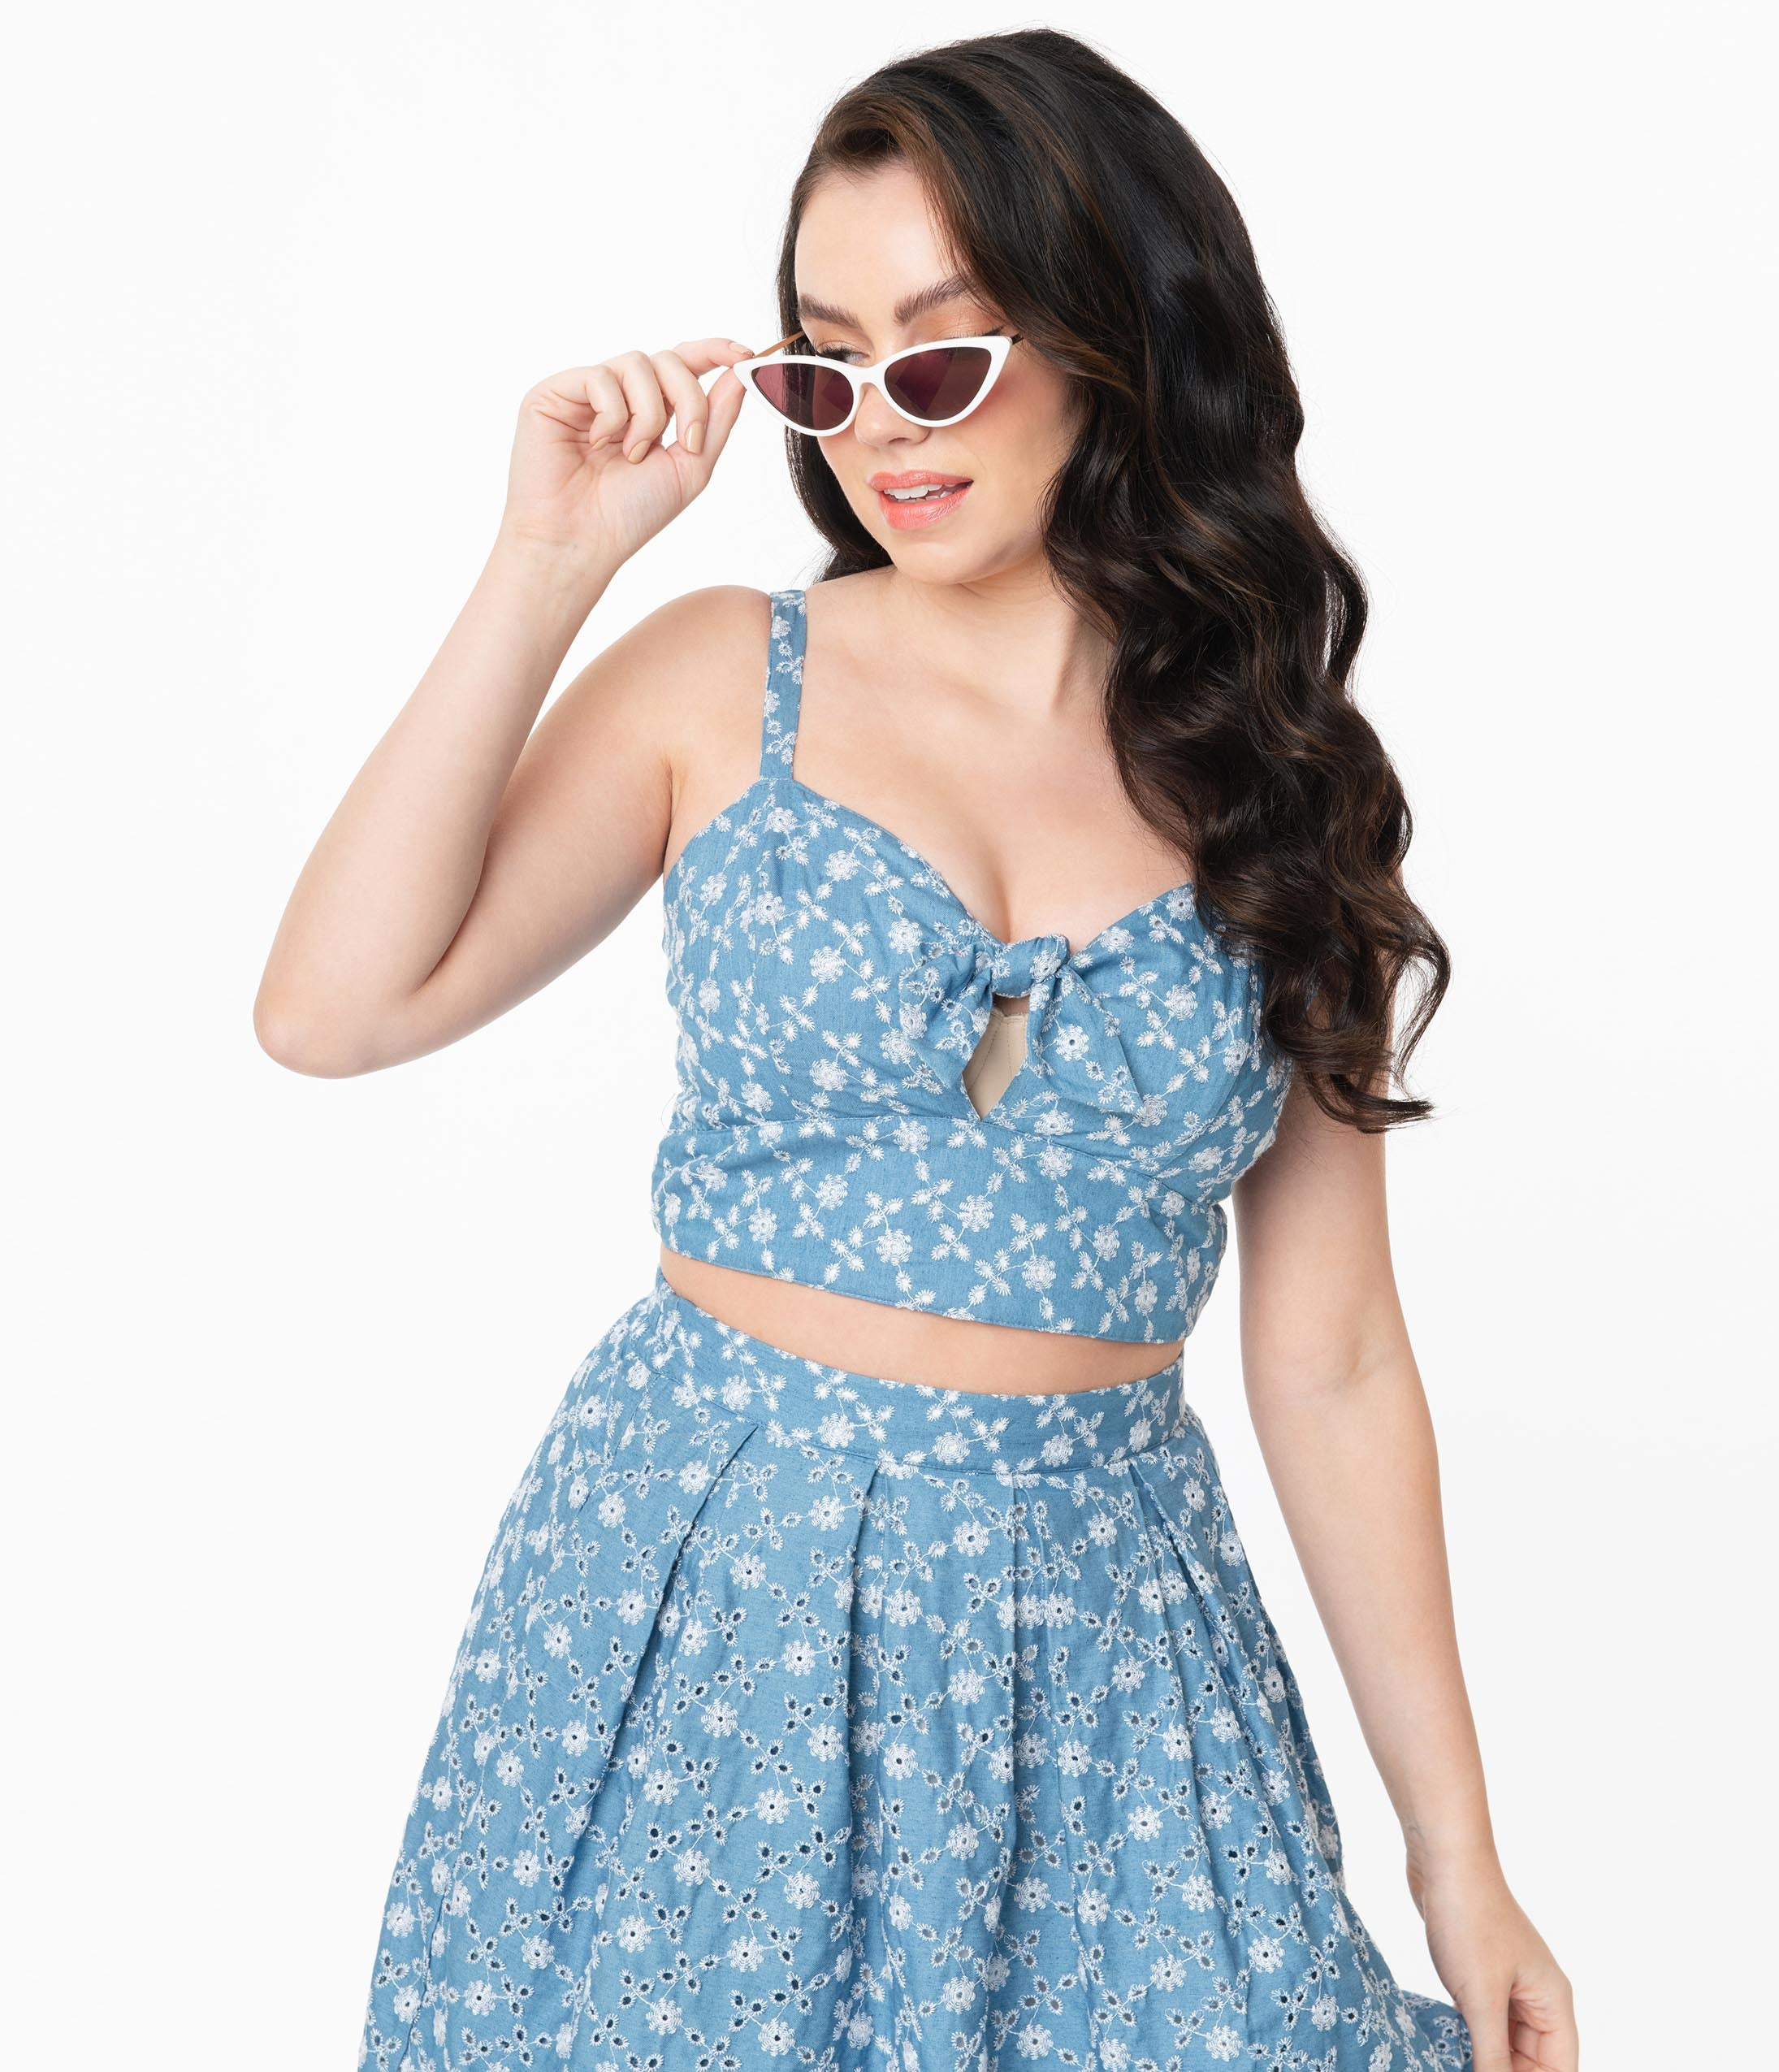 50s Shirts & Tops Unique Vintage Chambray Floral Eyelet Chessie Crop Top $38.00 AT vintagedancer.com